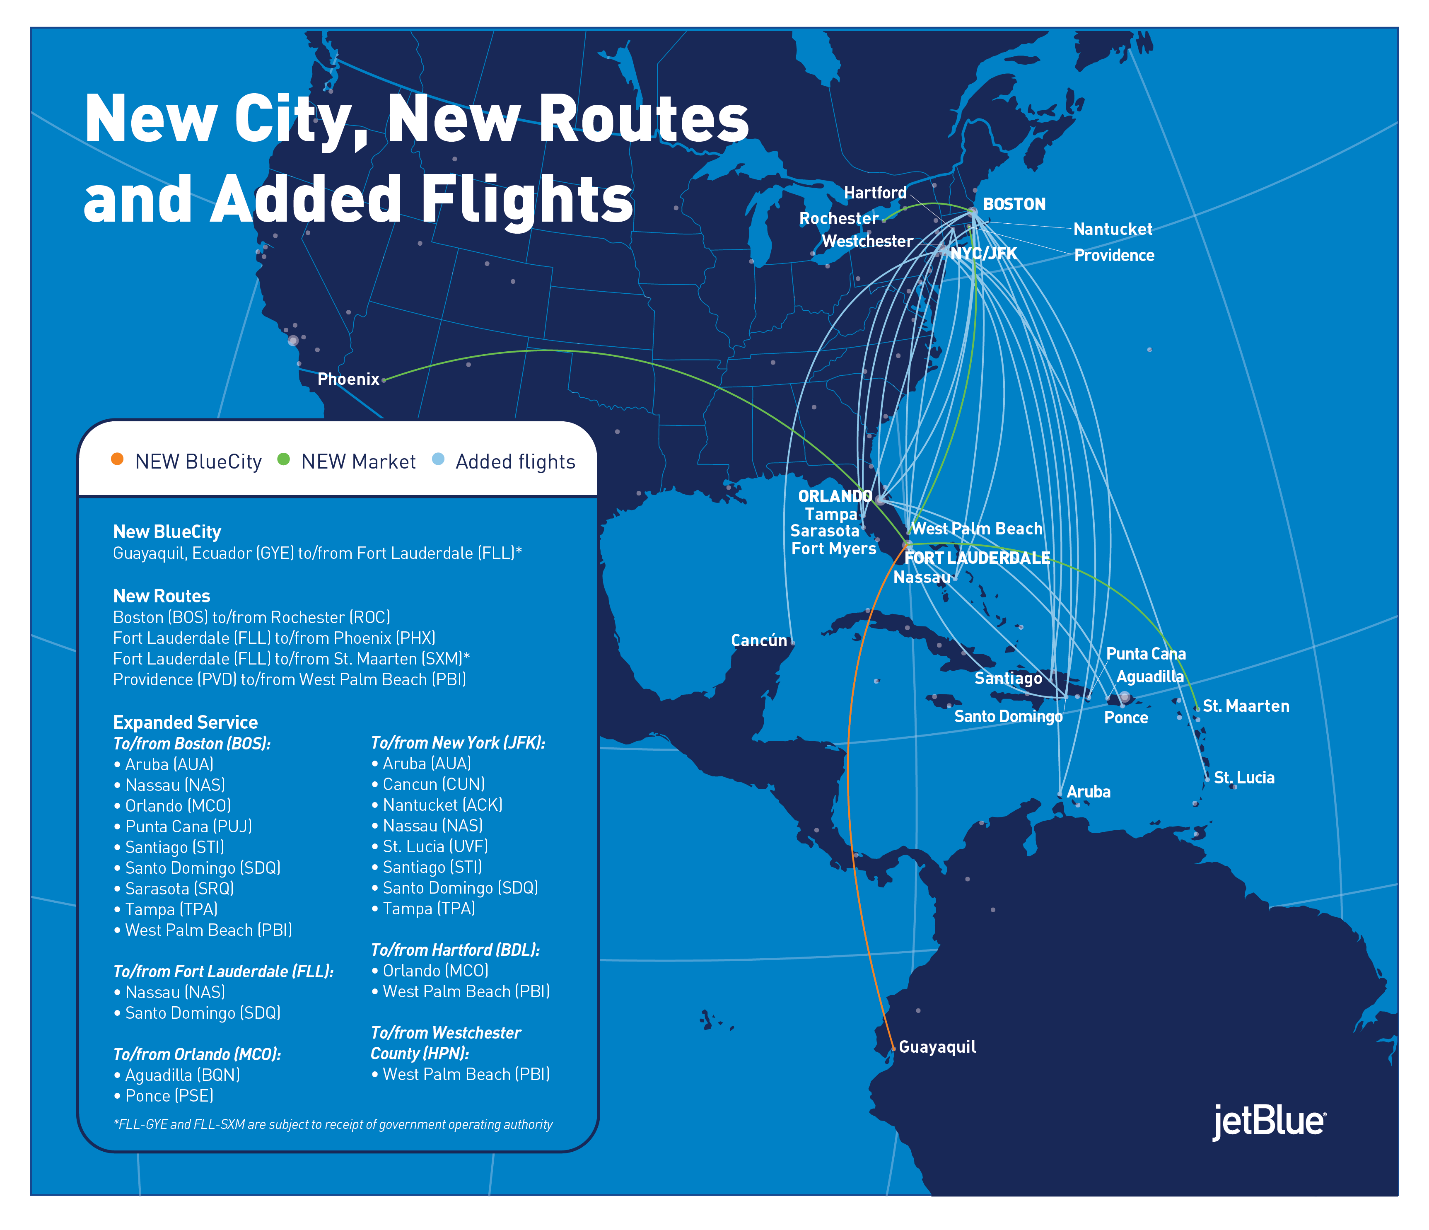 More Flights, More New Routes – Out of the Blue on united airlines flight routes 2011, lufthansa airlines route map, united airlines route structure, british airways route map, spirit airlines route map, skywest airlines route map, asia pacific airlines route map, delta caribbean route map, american airlines route map, cayman airways route map, northwest airlines route map, latin america and caribbean map, aa route map, united international route map, delta air lines route map, jetblue caribbean route map, allegiant airlines route map, continental airlines route map, united route map europe, united airlines international routes,